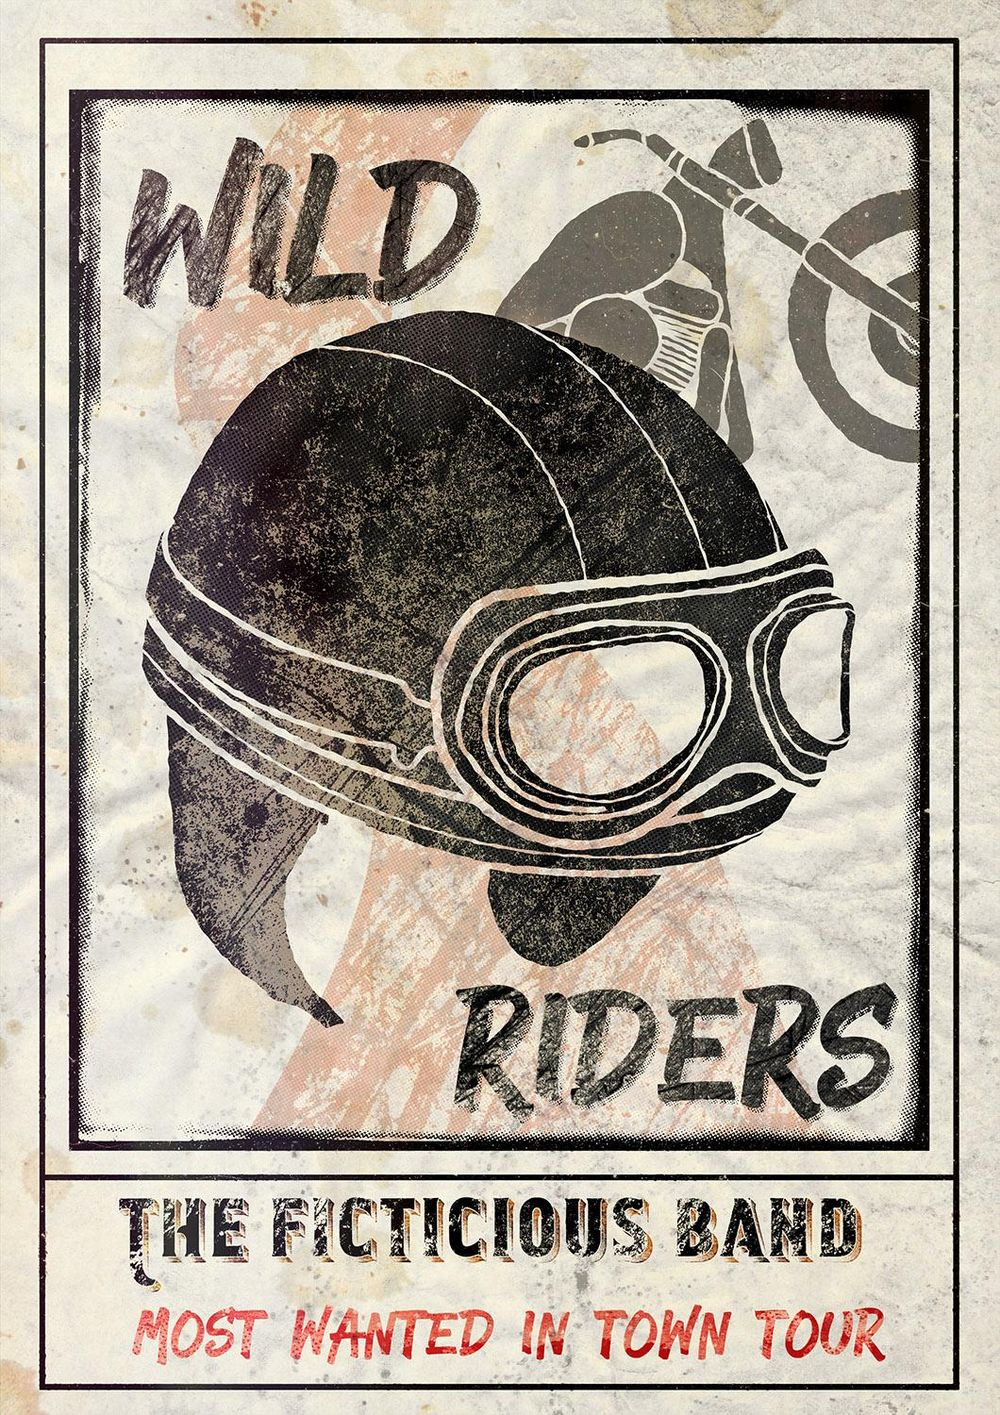 Wild Riders Gig Poster - image 1 - student project